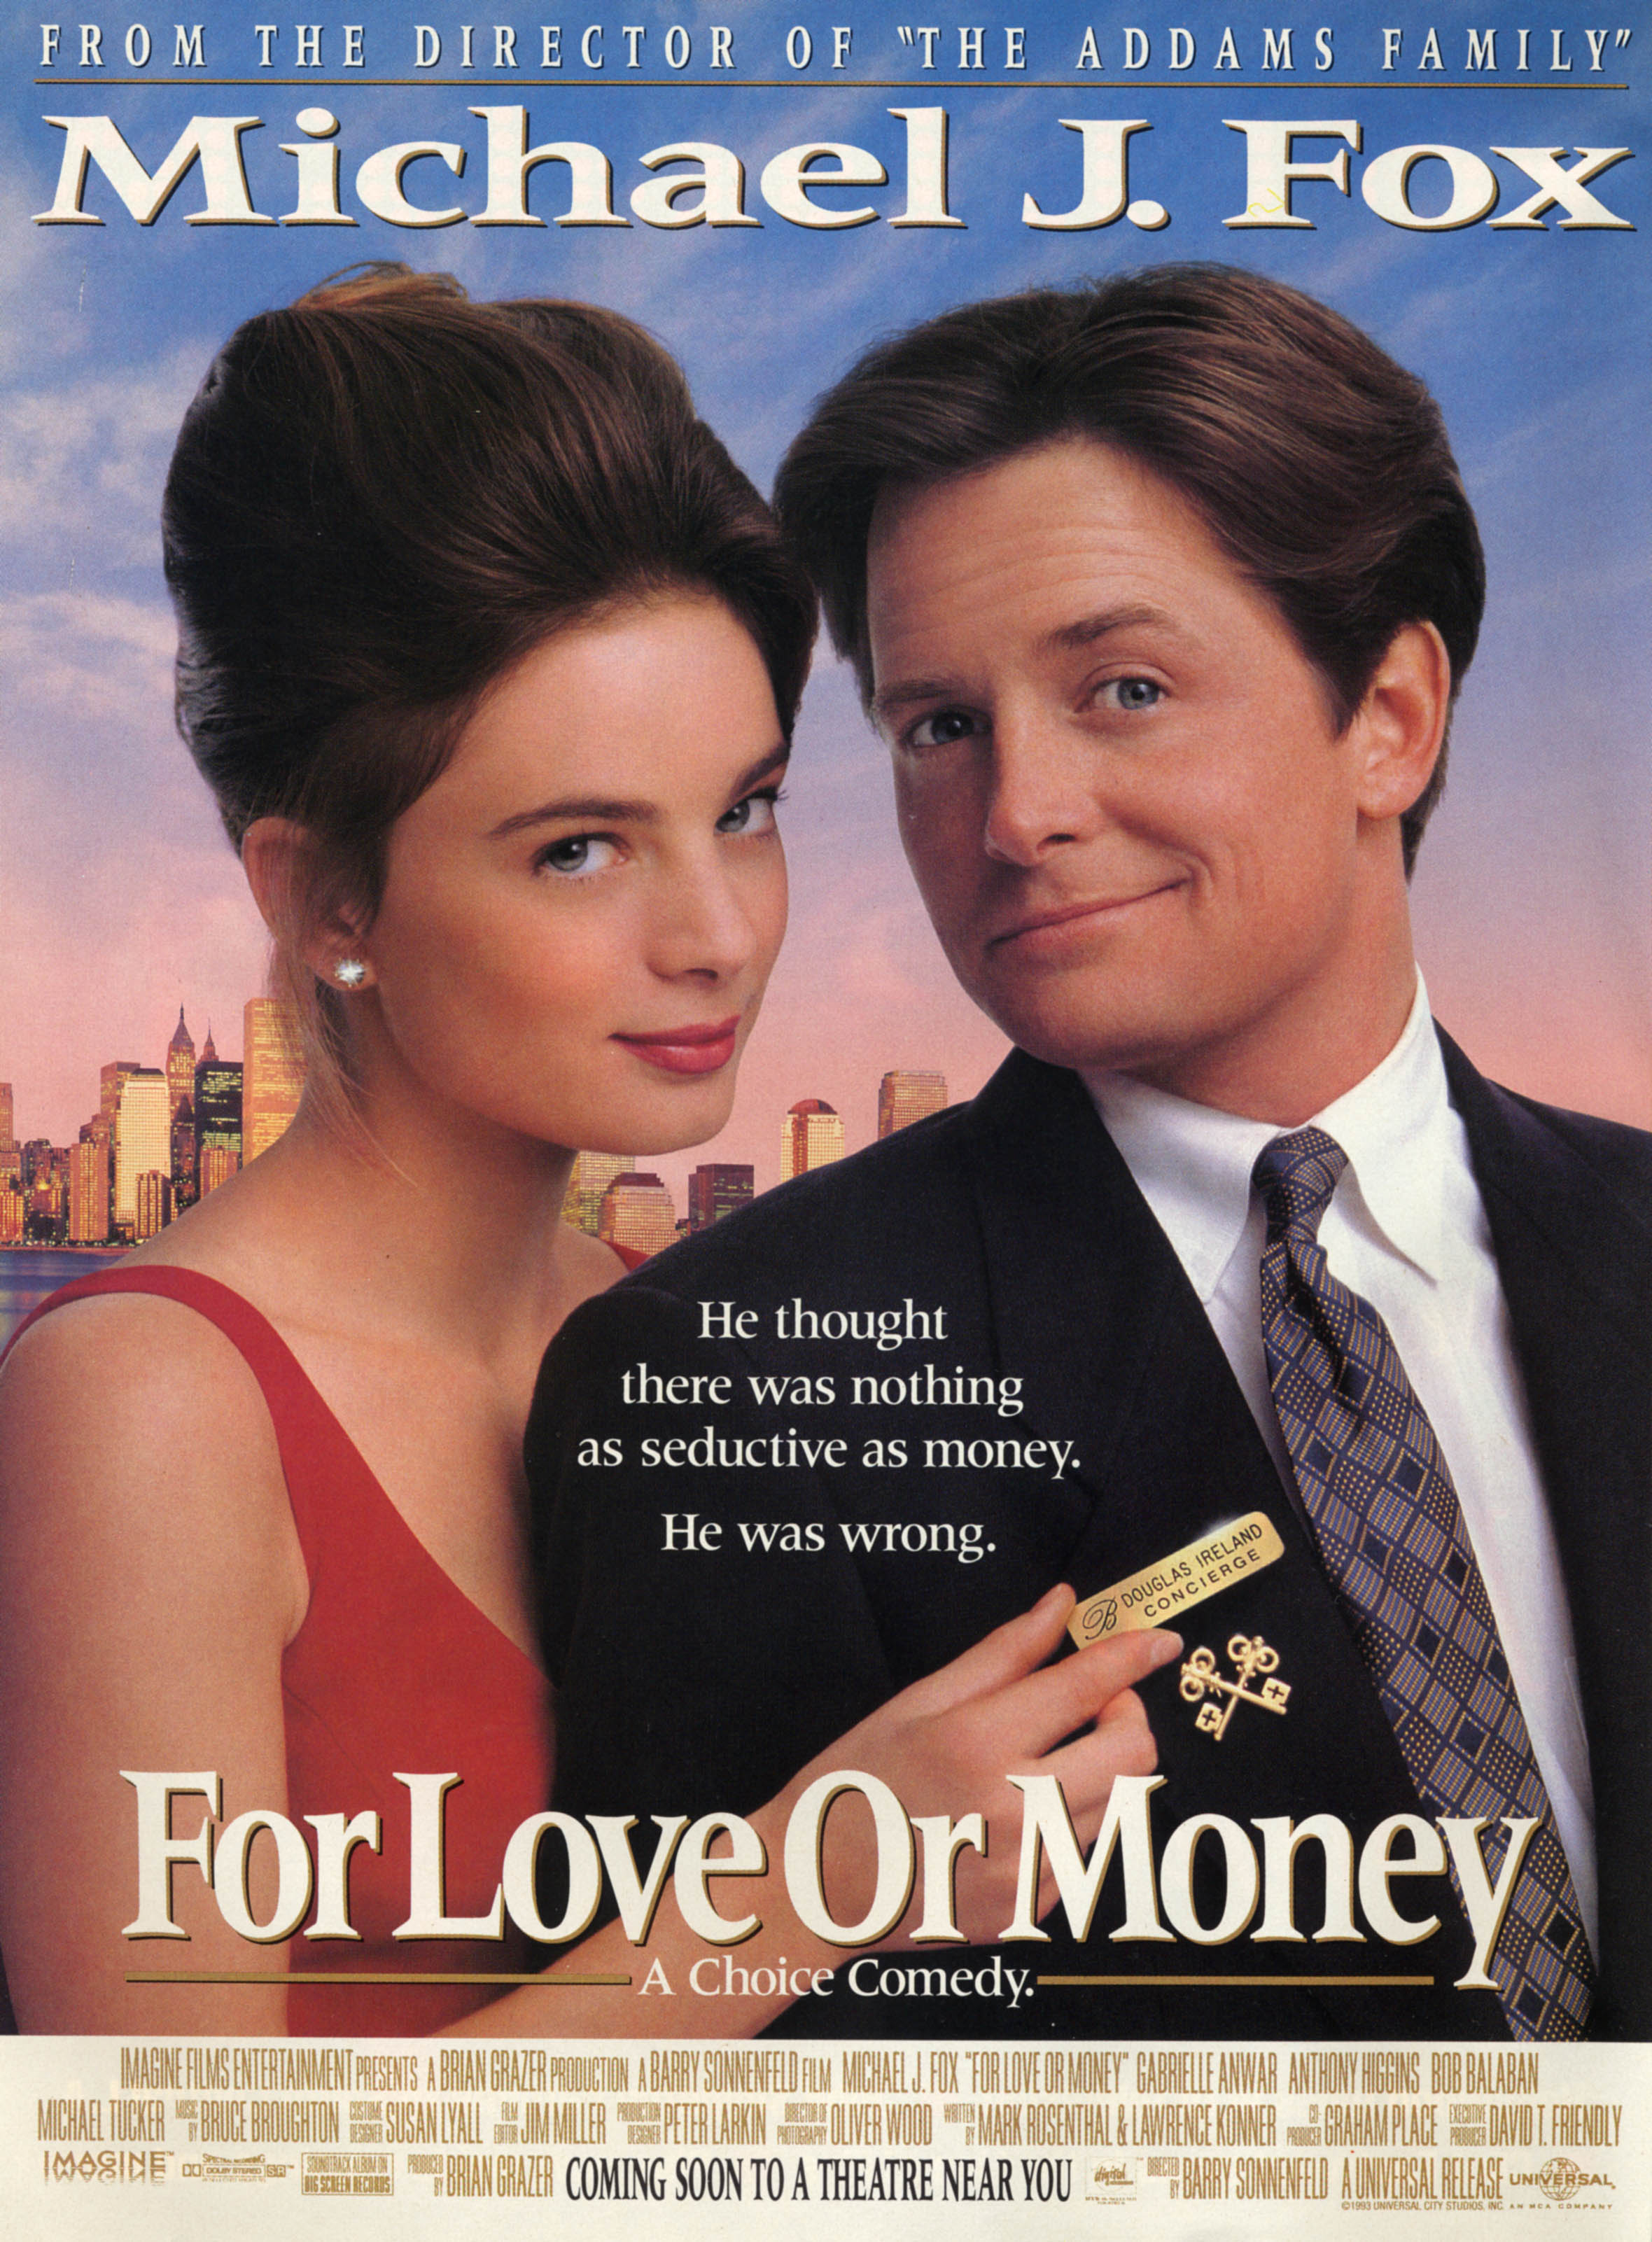 For Love Or Money Images | XXXHacking: xxxhacking.com/for-love-or-money.html